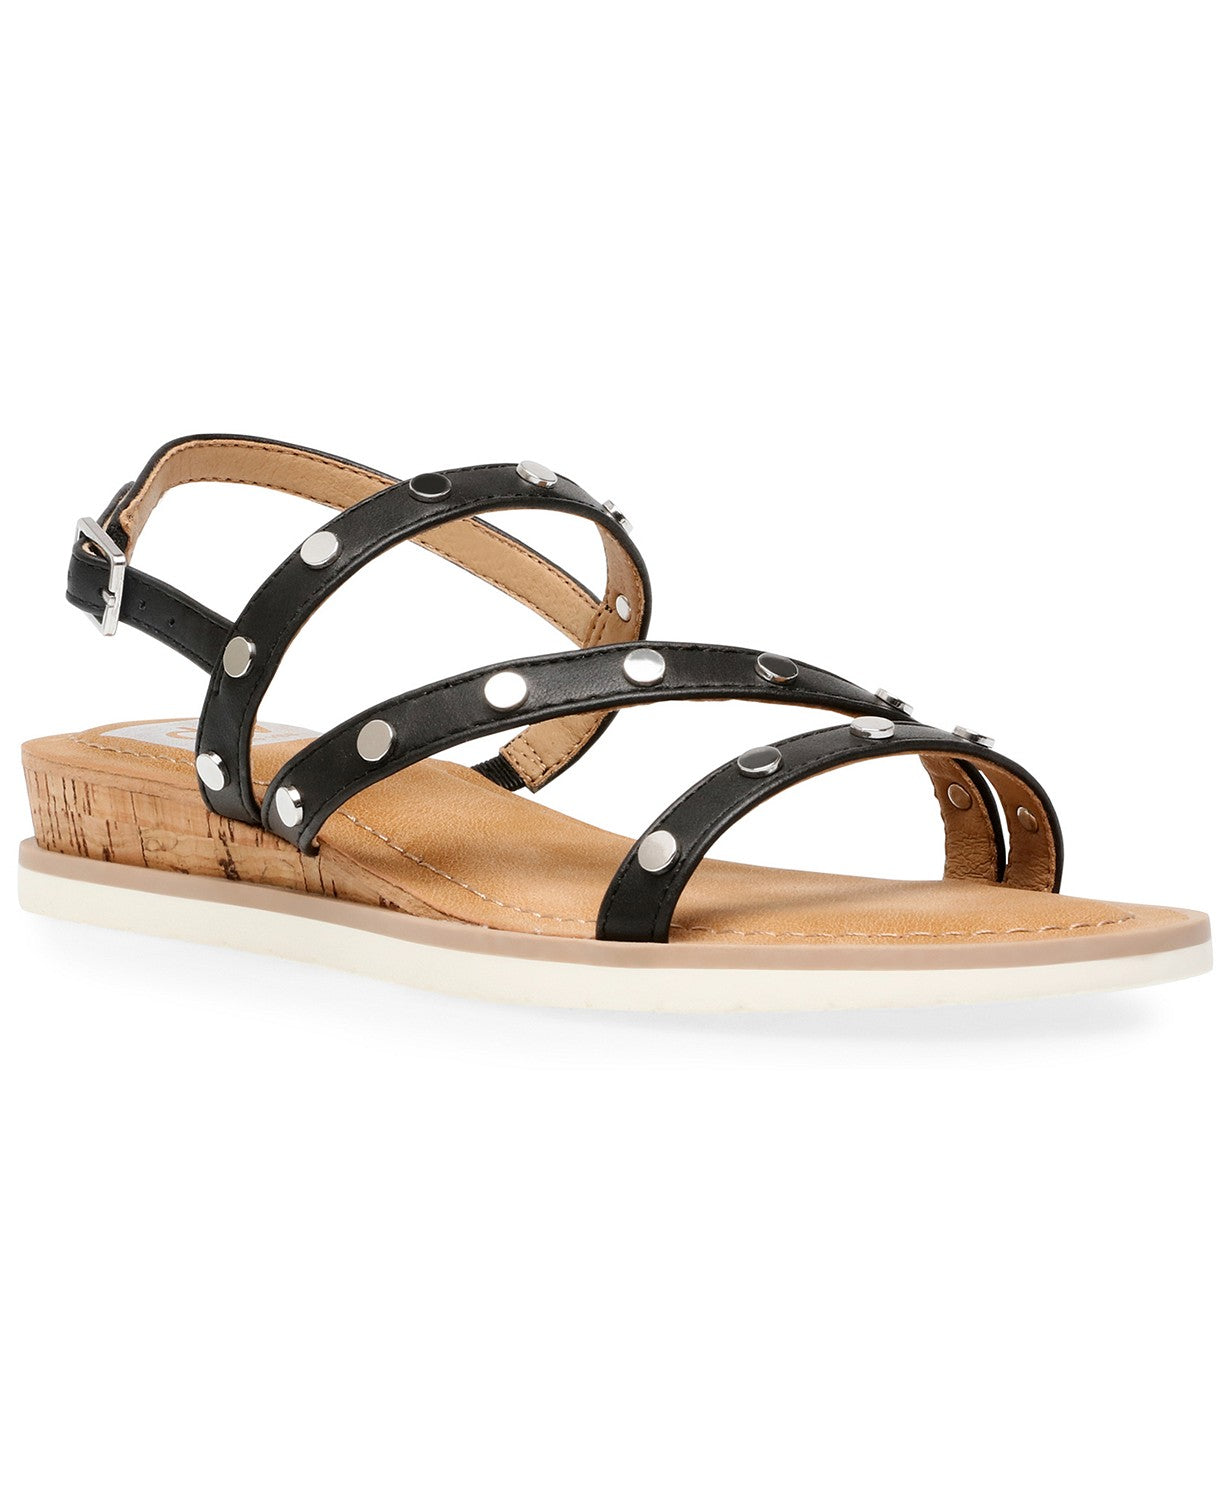 Febia Demi-Wedge Sandal